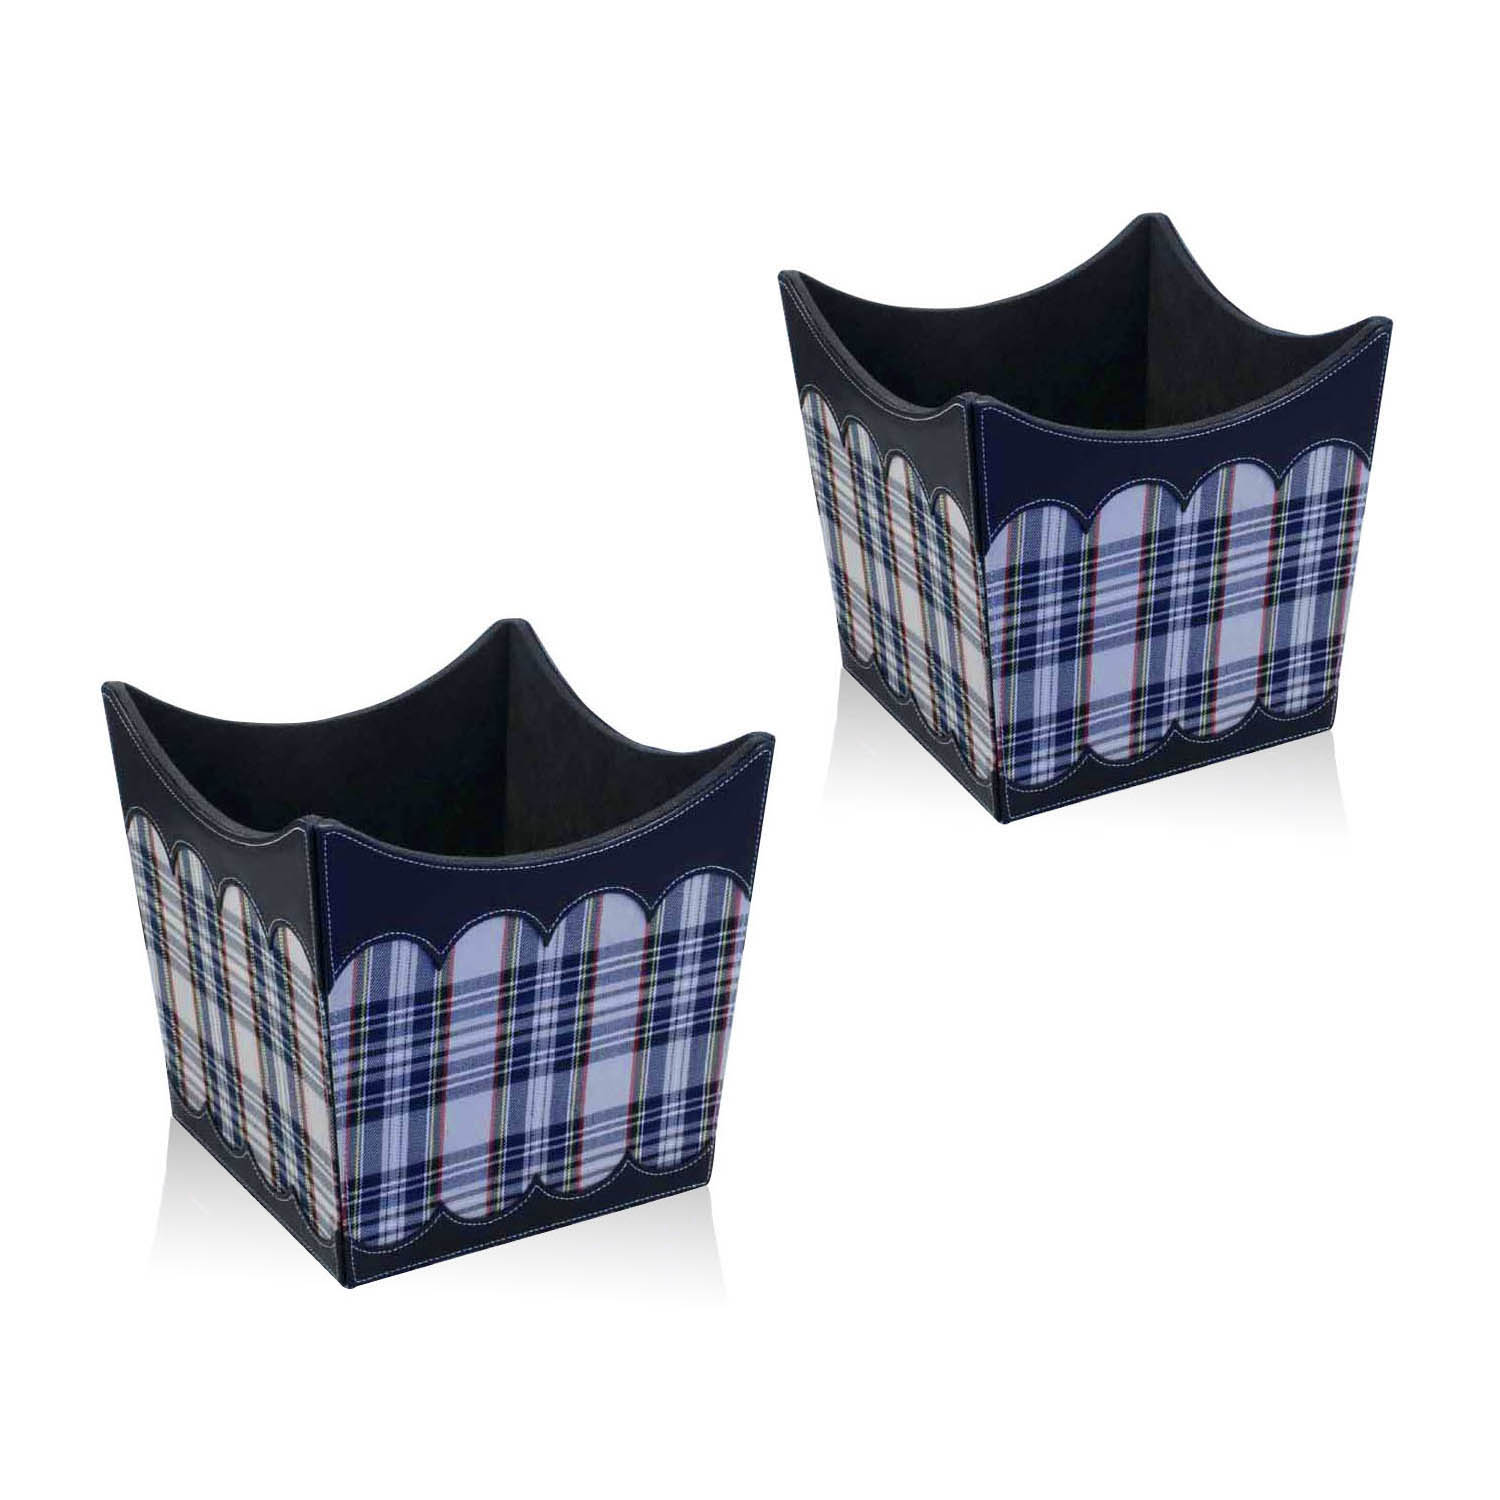 Blue lattice shaped durable PU leather storage basket